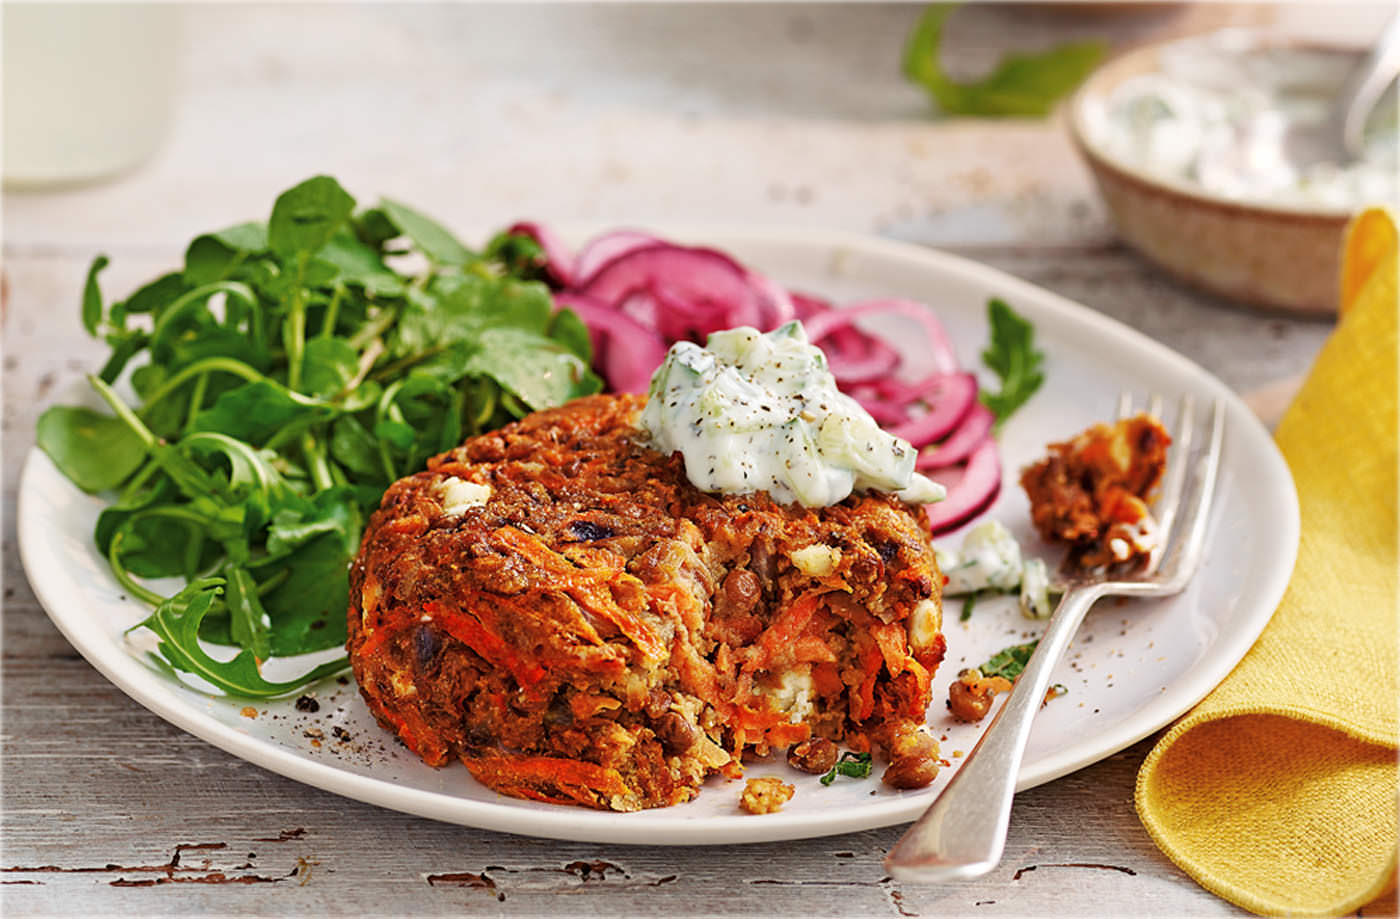 Carrot feta burger recipe vegetarian recipes tesco real food forumfinder Gallery